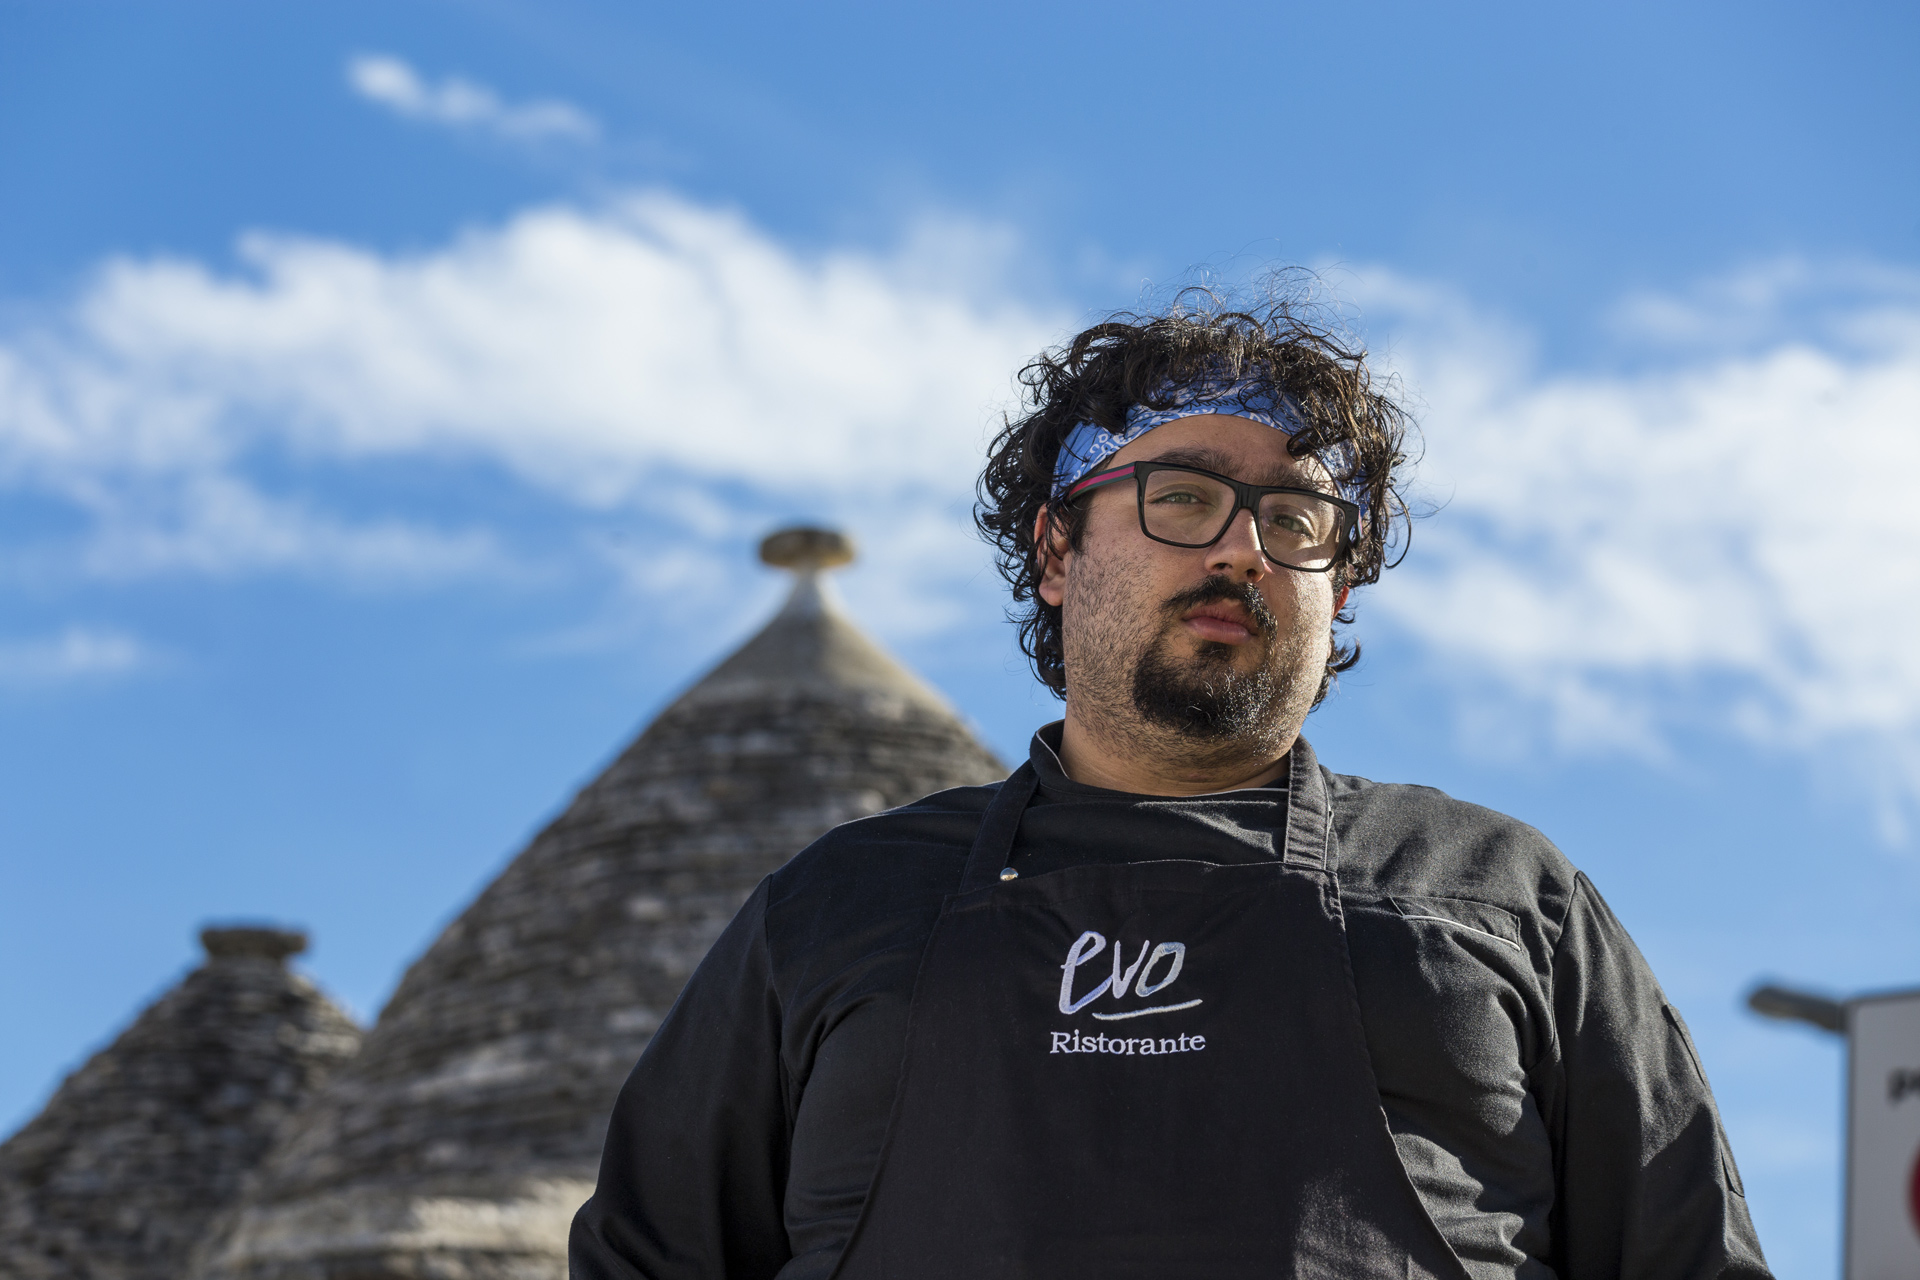 Gianvito Matarrese, Chef